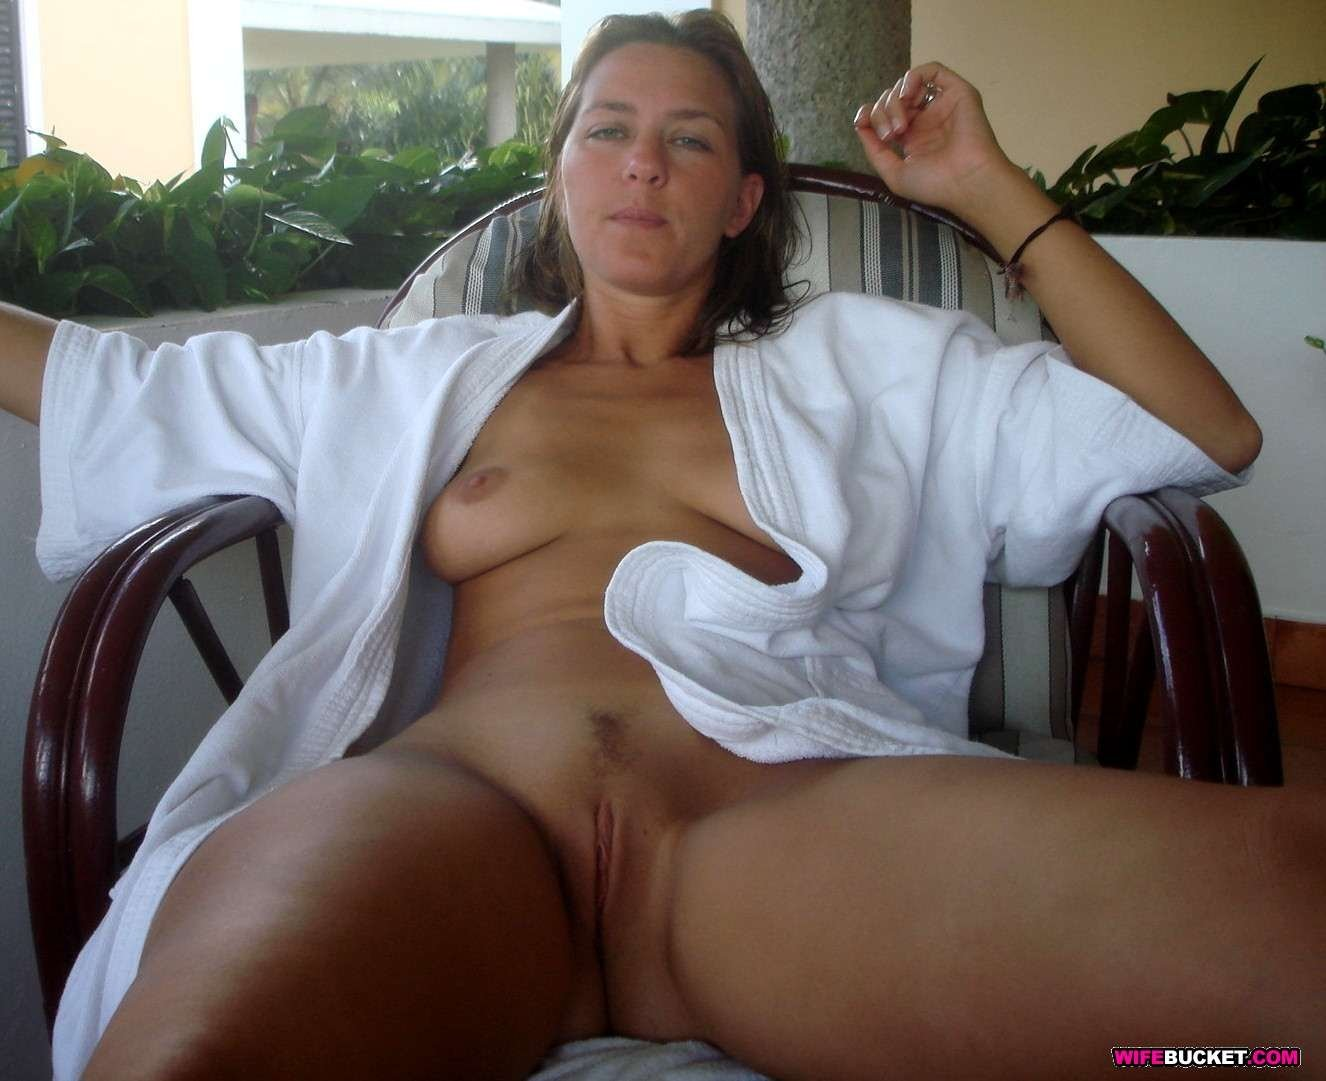 Threesome with a black man Free amateur streams